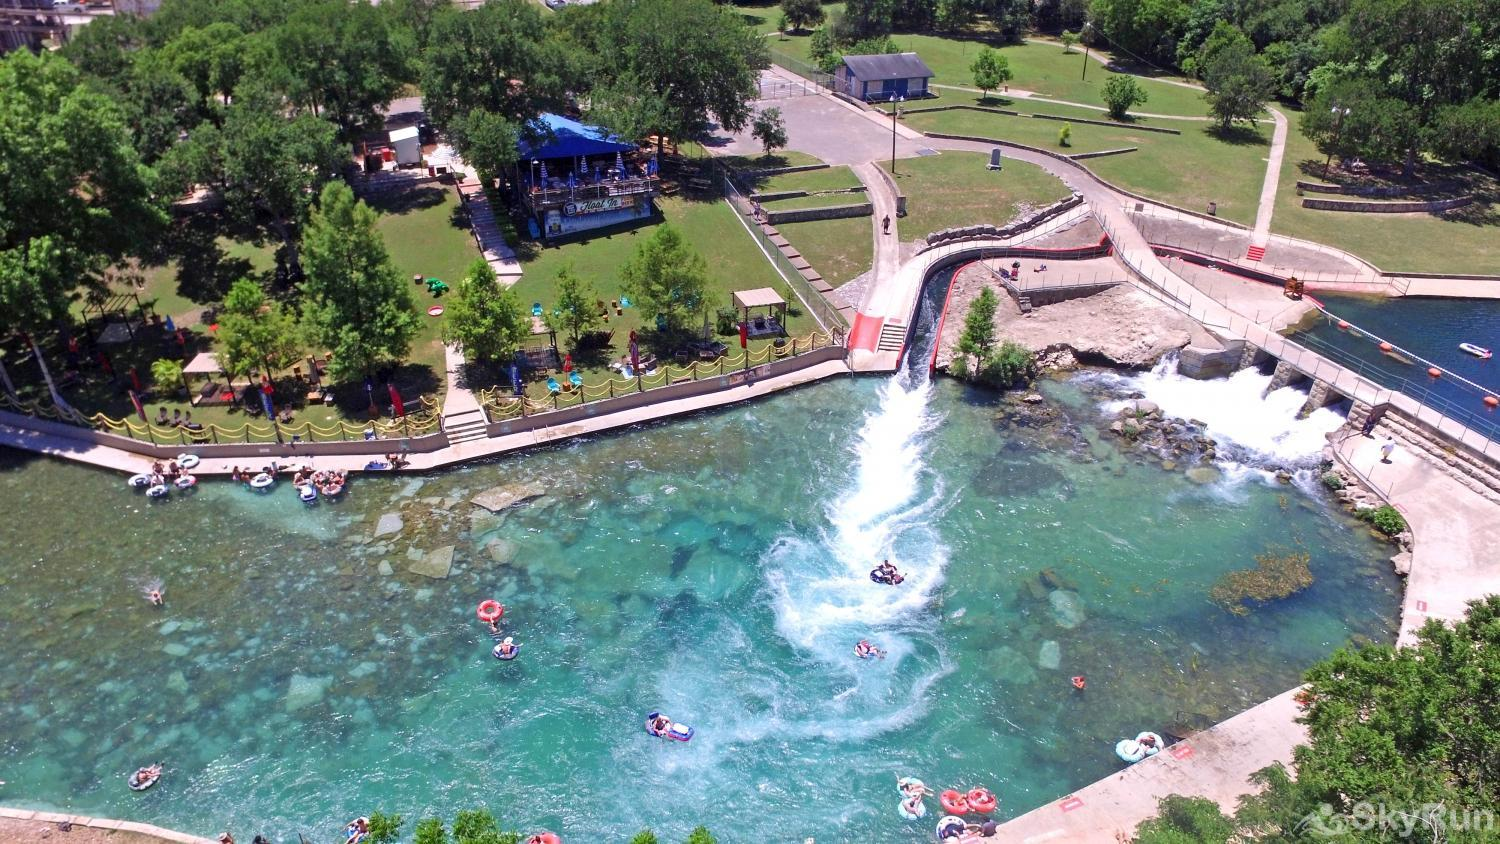 BELLA'S COVE The Comal River tube chute at Prince Solms Park